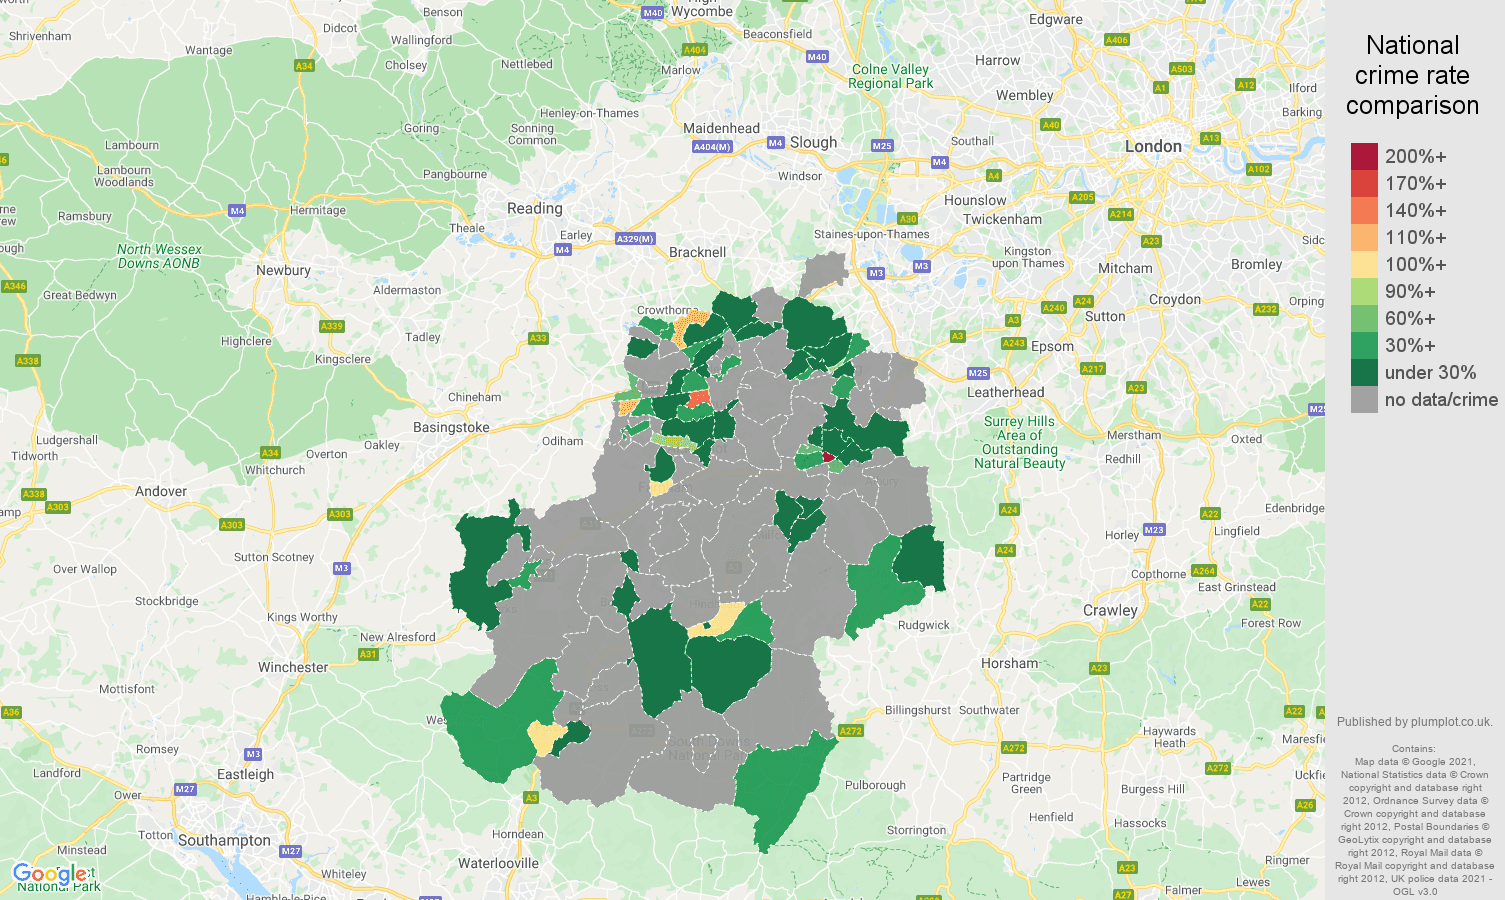 Guildford theft from the person crime rate comparison map